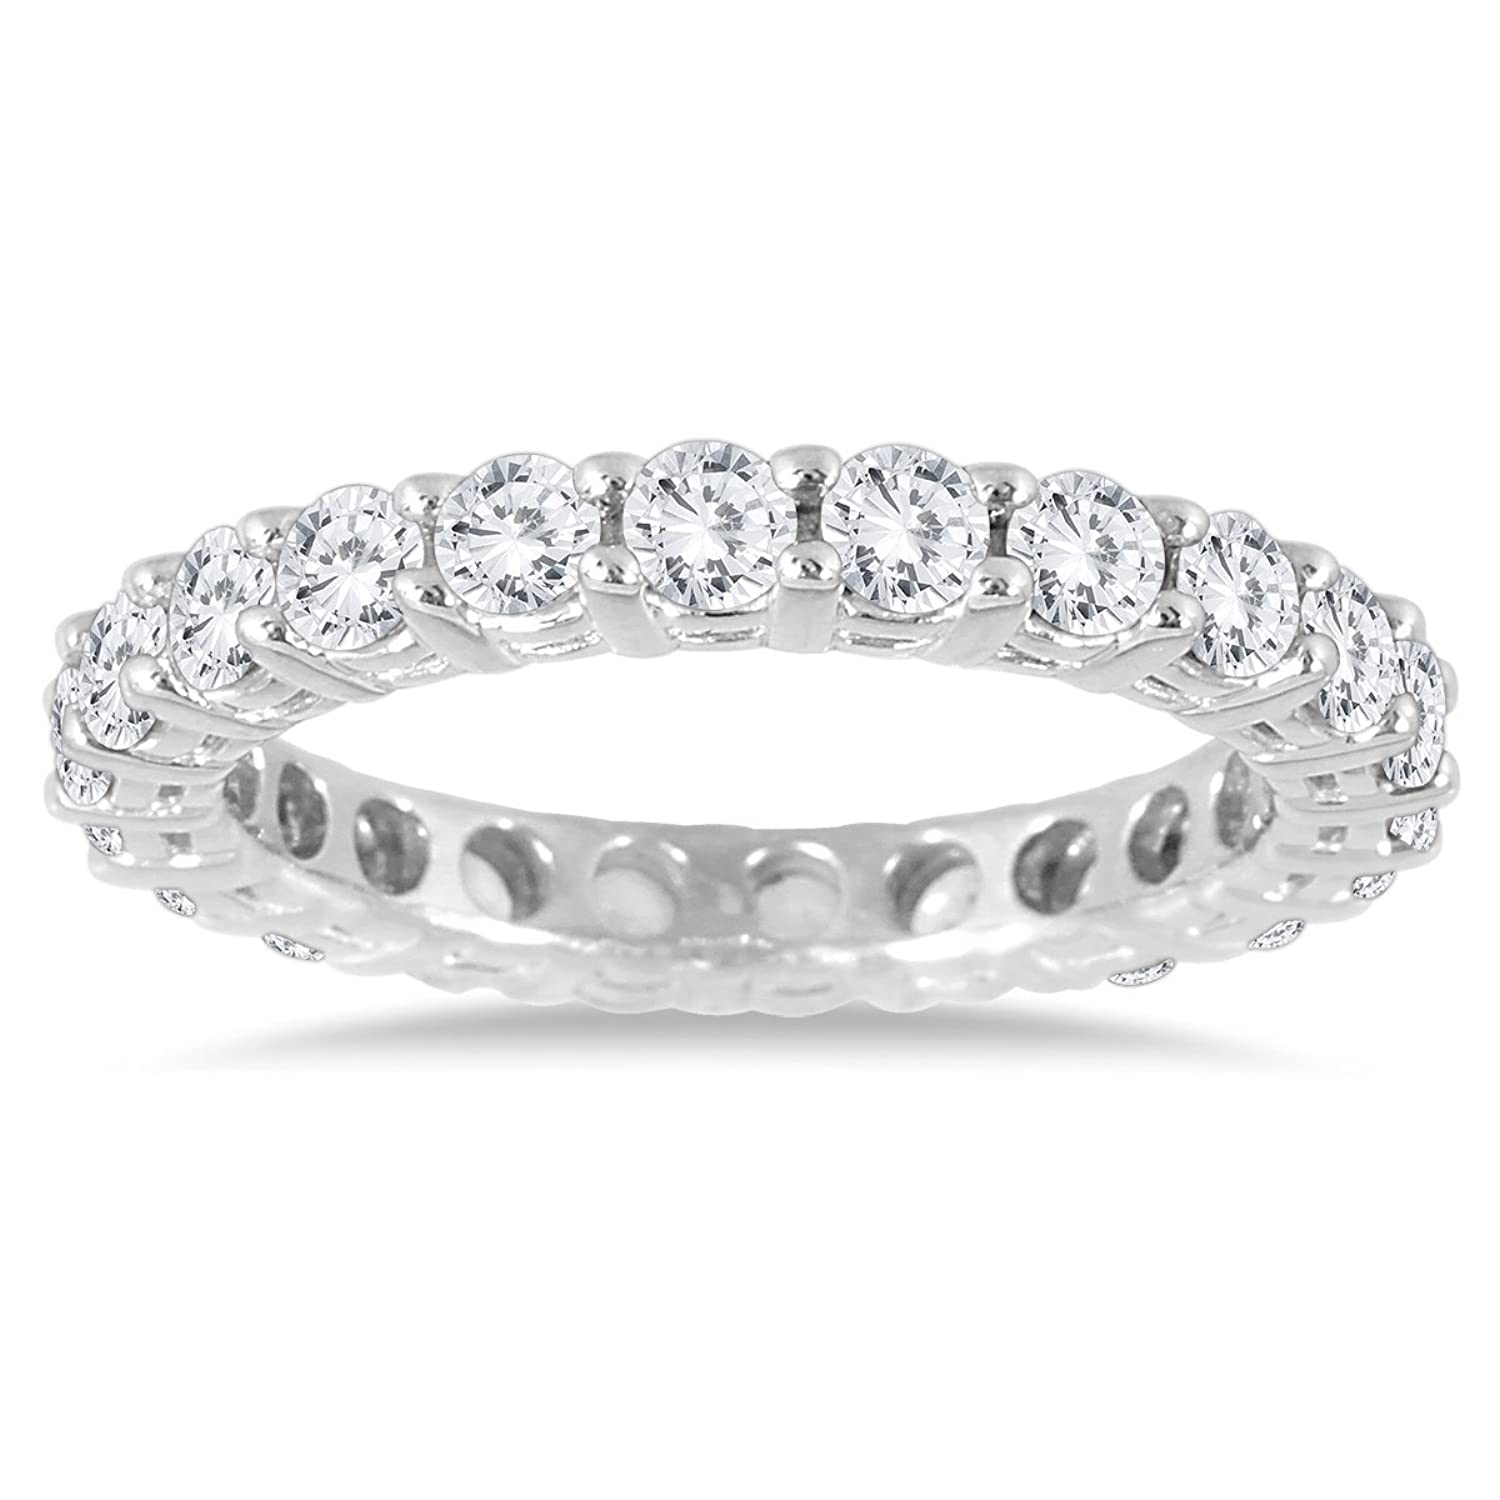 stone band white ct bands radiant carat wedding diamond sku jewelry in anniversary wg with gold this nl five